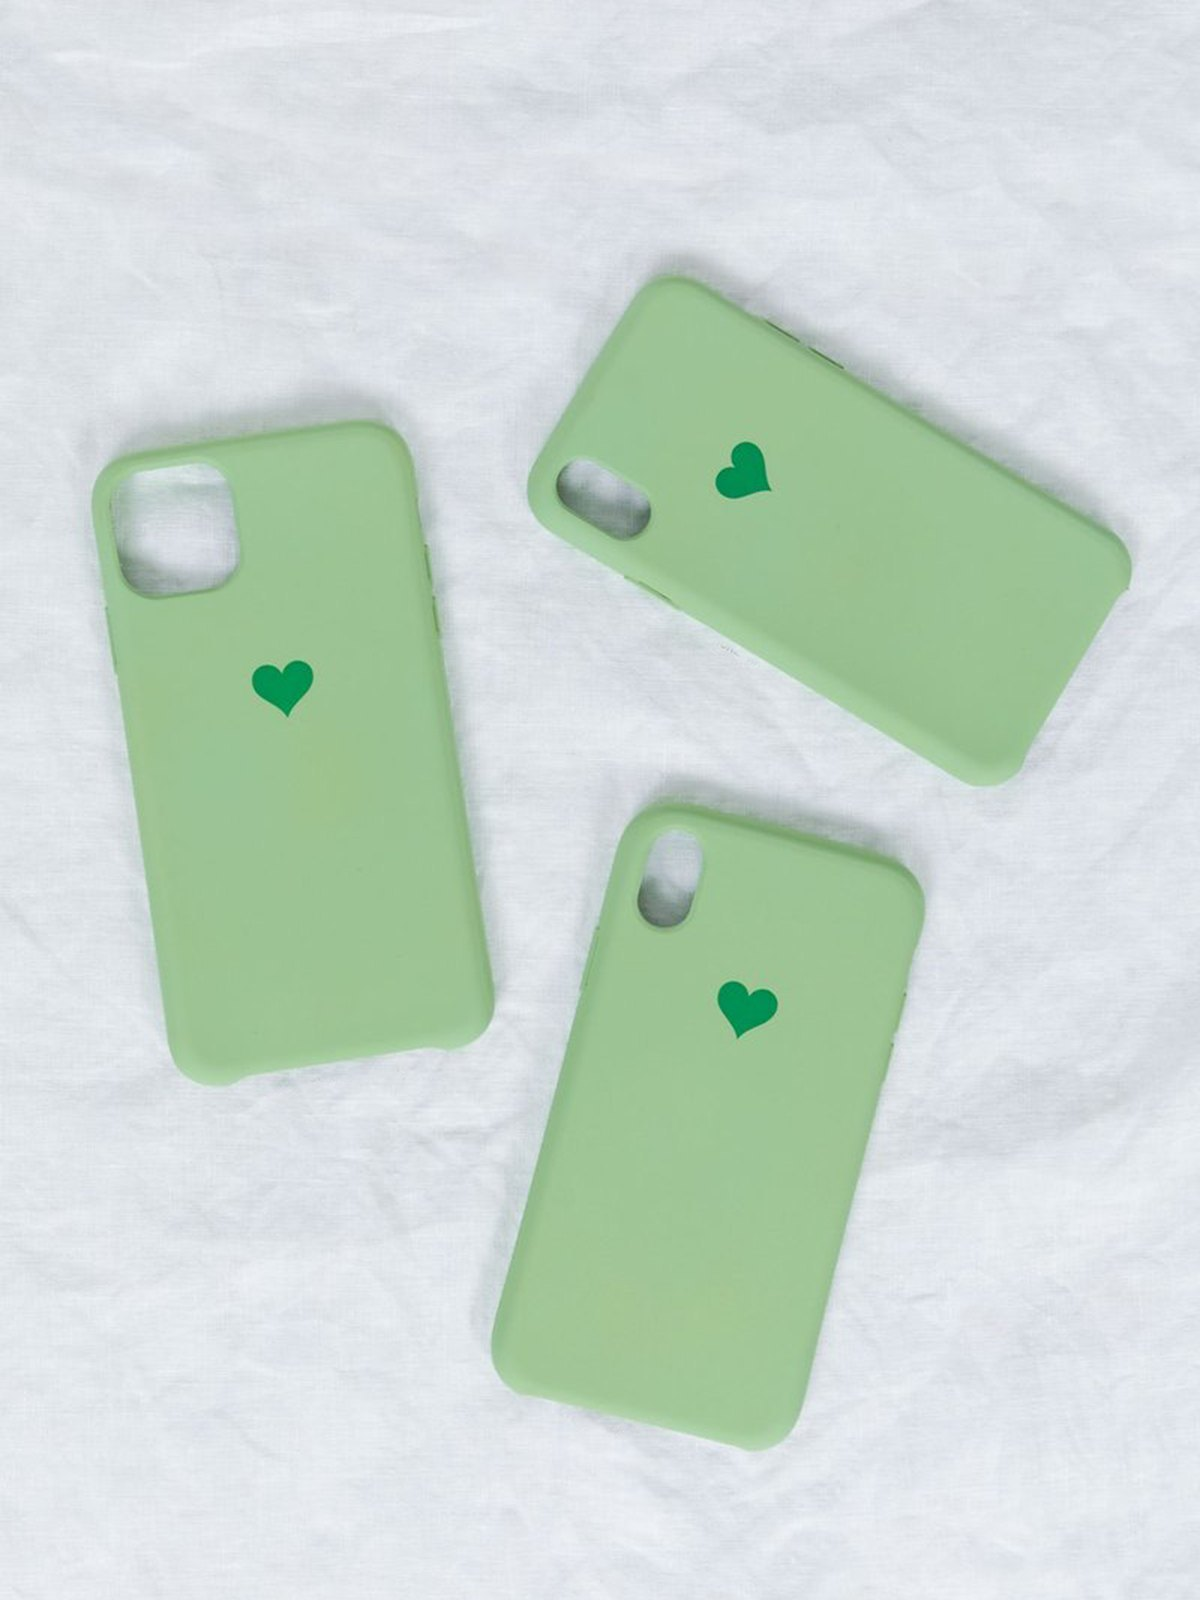 1Pcs Heart-shaped Iphone Cases - Green iPhone X/Xs